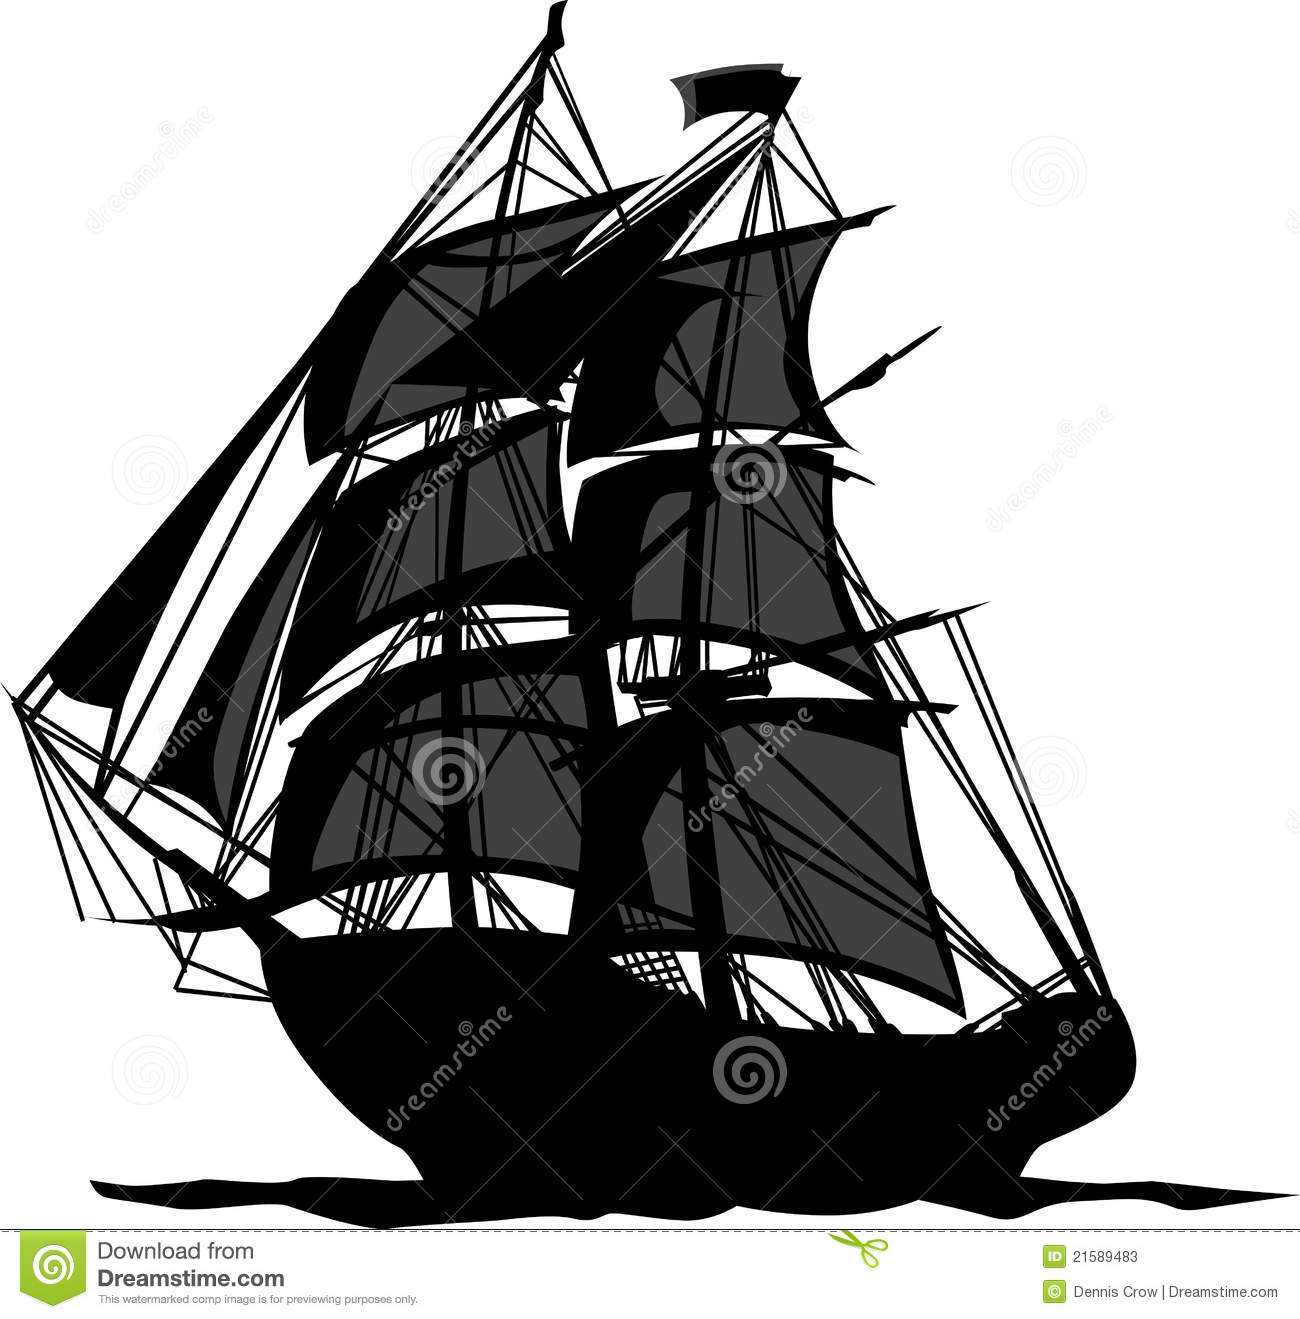 Pirate Ship With Sails Vector Illustration Stock Photos - Image ...